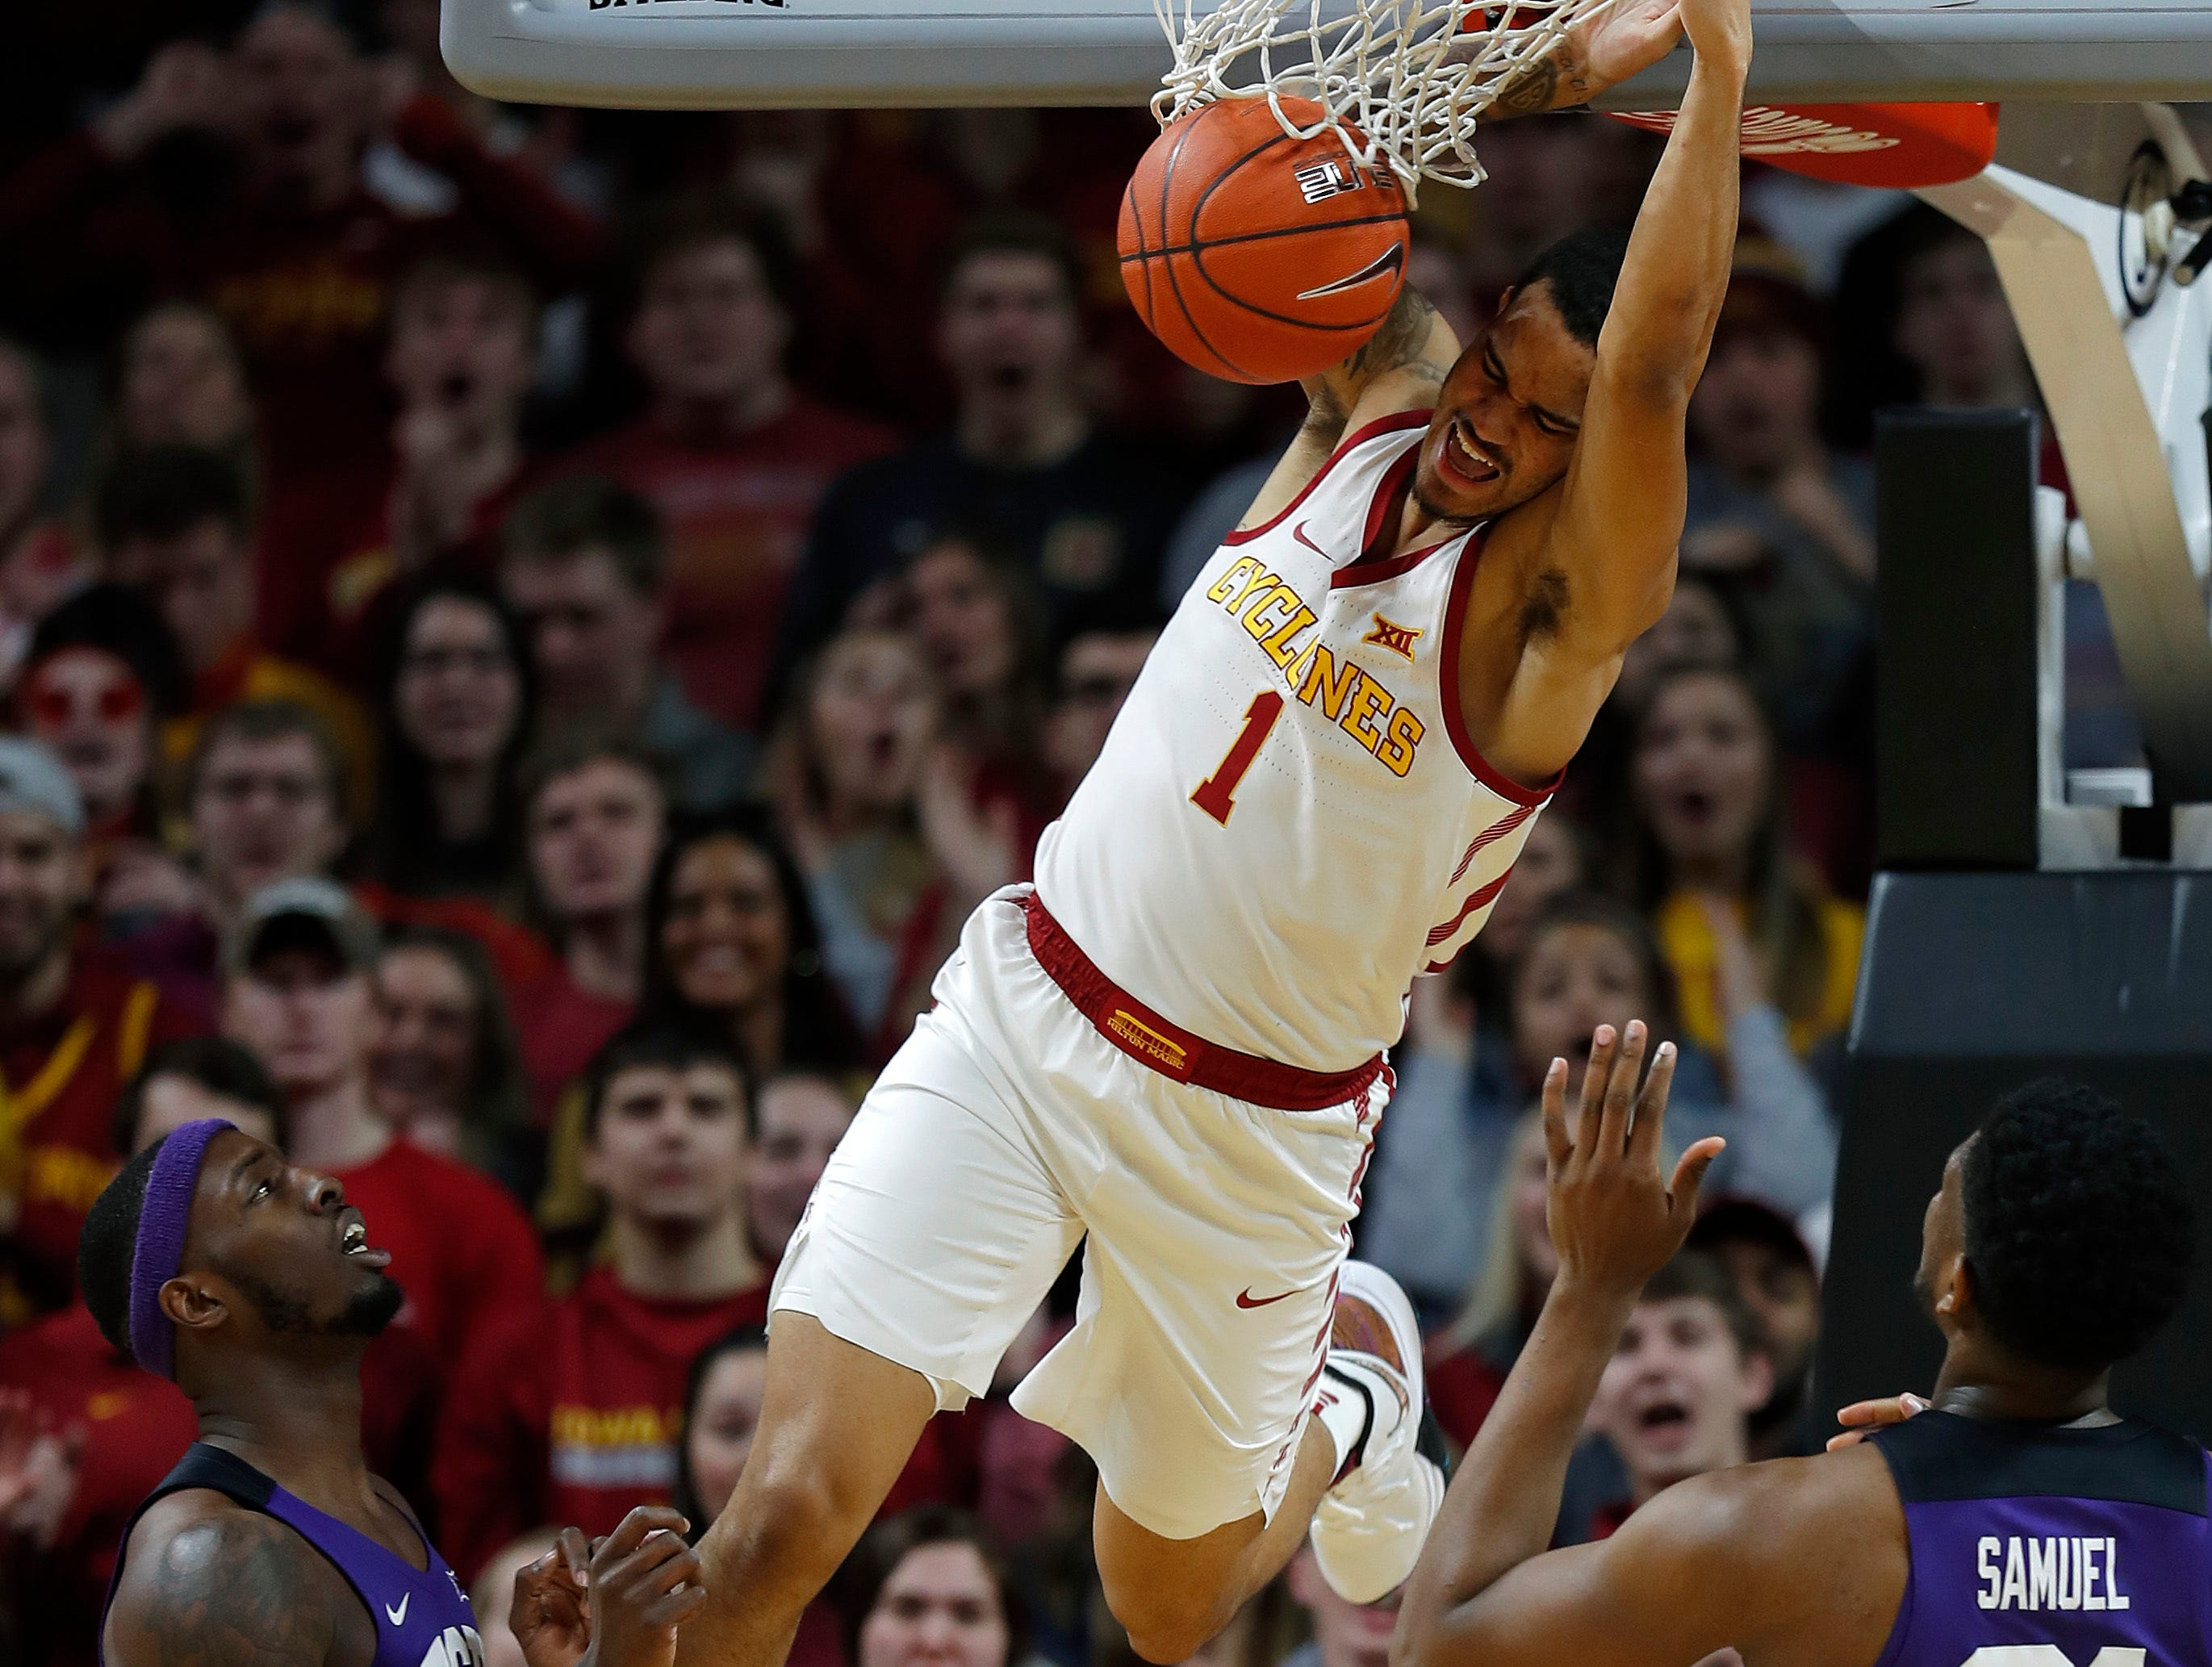 Iowa State guard Nick Weiler-Babb, center, dunks the ball over TCU forward J.D. Miller and TCU center Kevin Samuel, right, during their game Saturday, Feb. 9, 2019, in Ames.